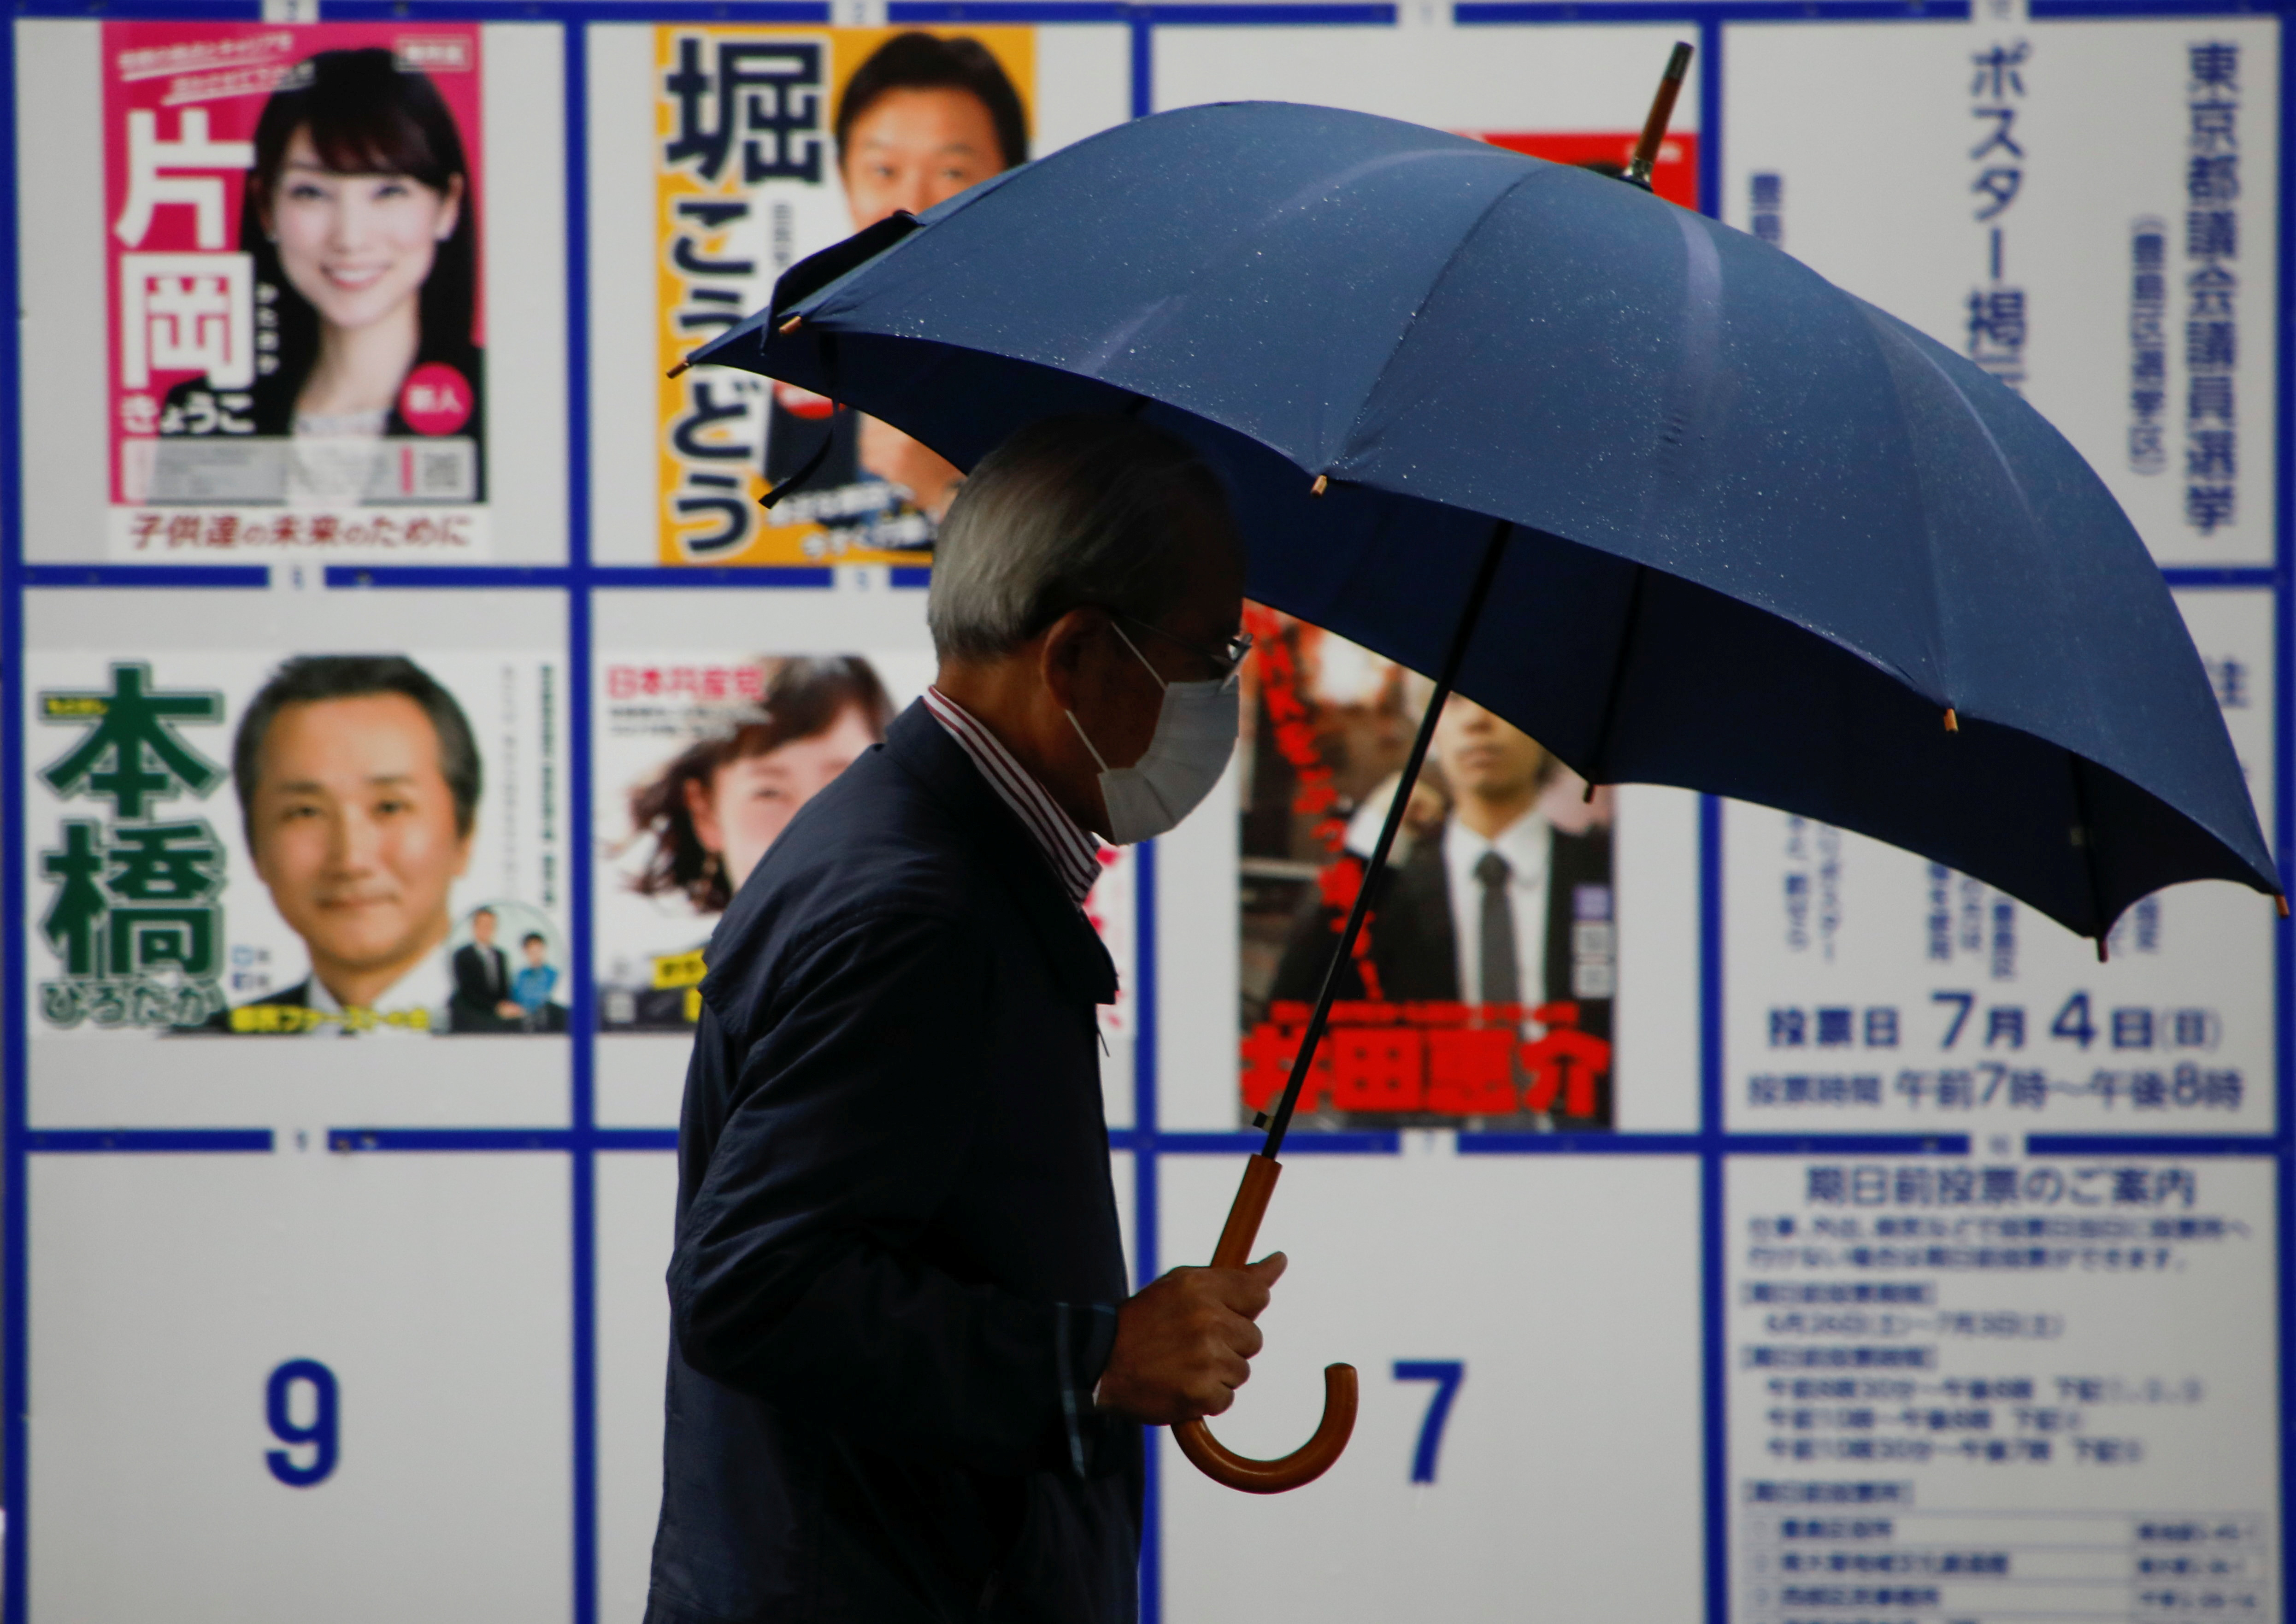 A voter wearing a protective face mask walks past a board displaying posters of candidates for the Tokyo Metropolitan Assembly election near a polling station, amid the coronavirus disease (COVID-19) outbreak, in Tokyo, Japan July 4, 2021.  REUTERS/Issei Kato